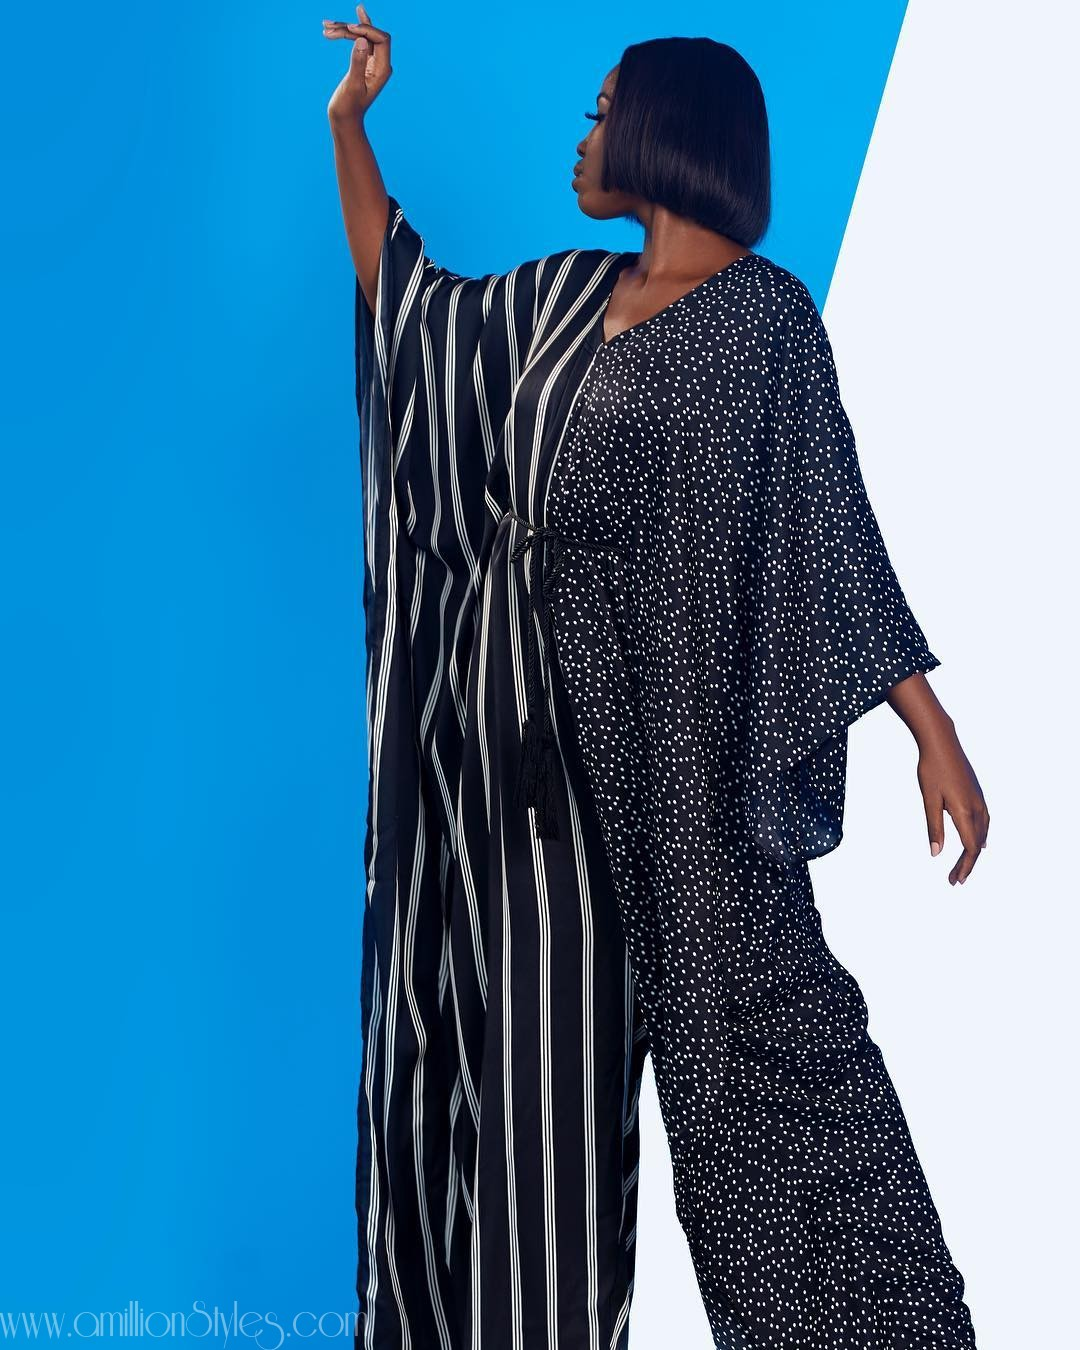 You've Never Seen Jumpsuit Styles Like These Before!